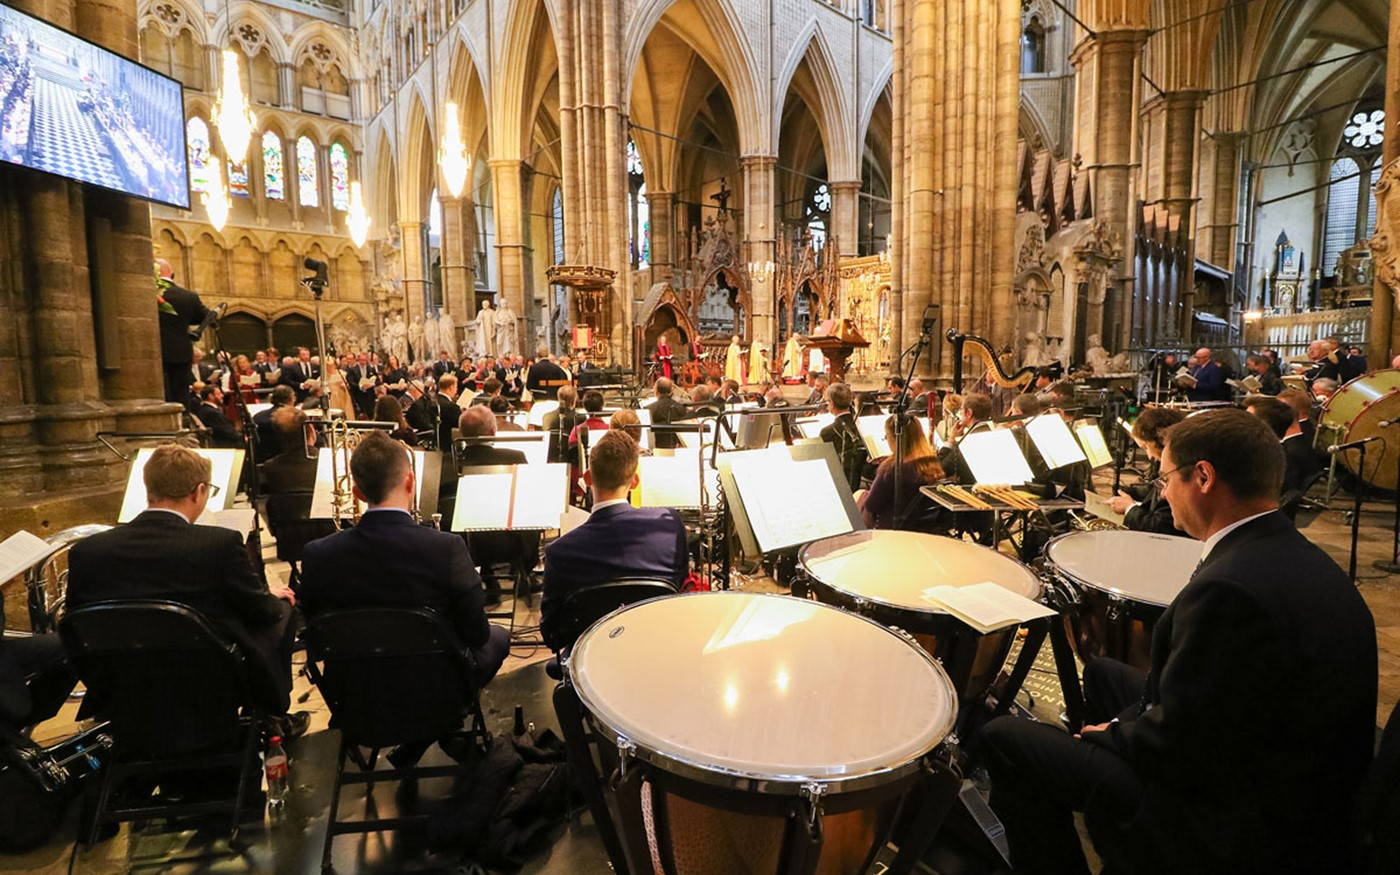 The BBC Concert Orchestra played during the service